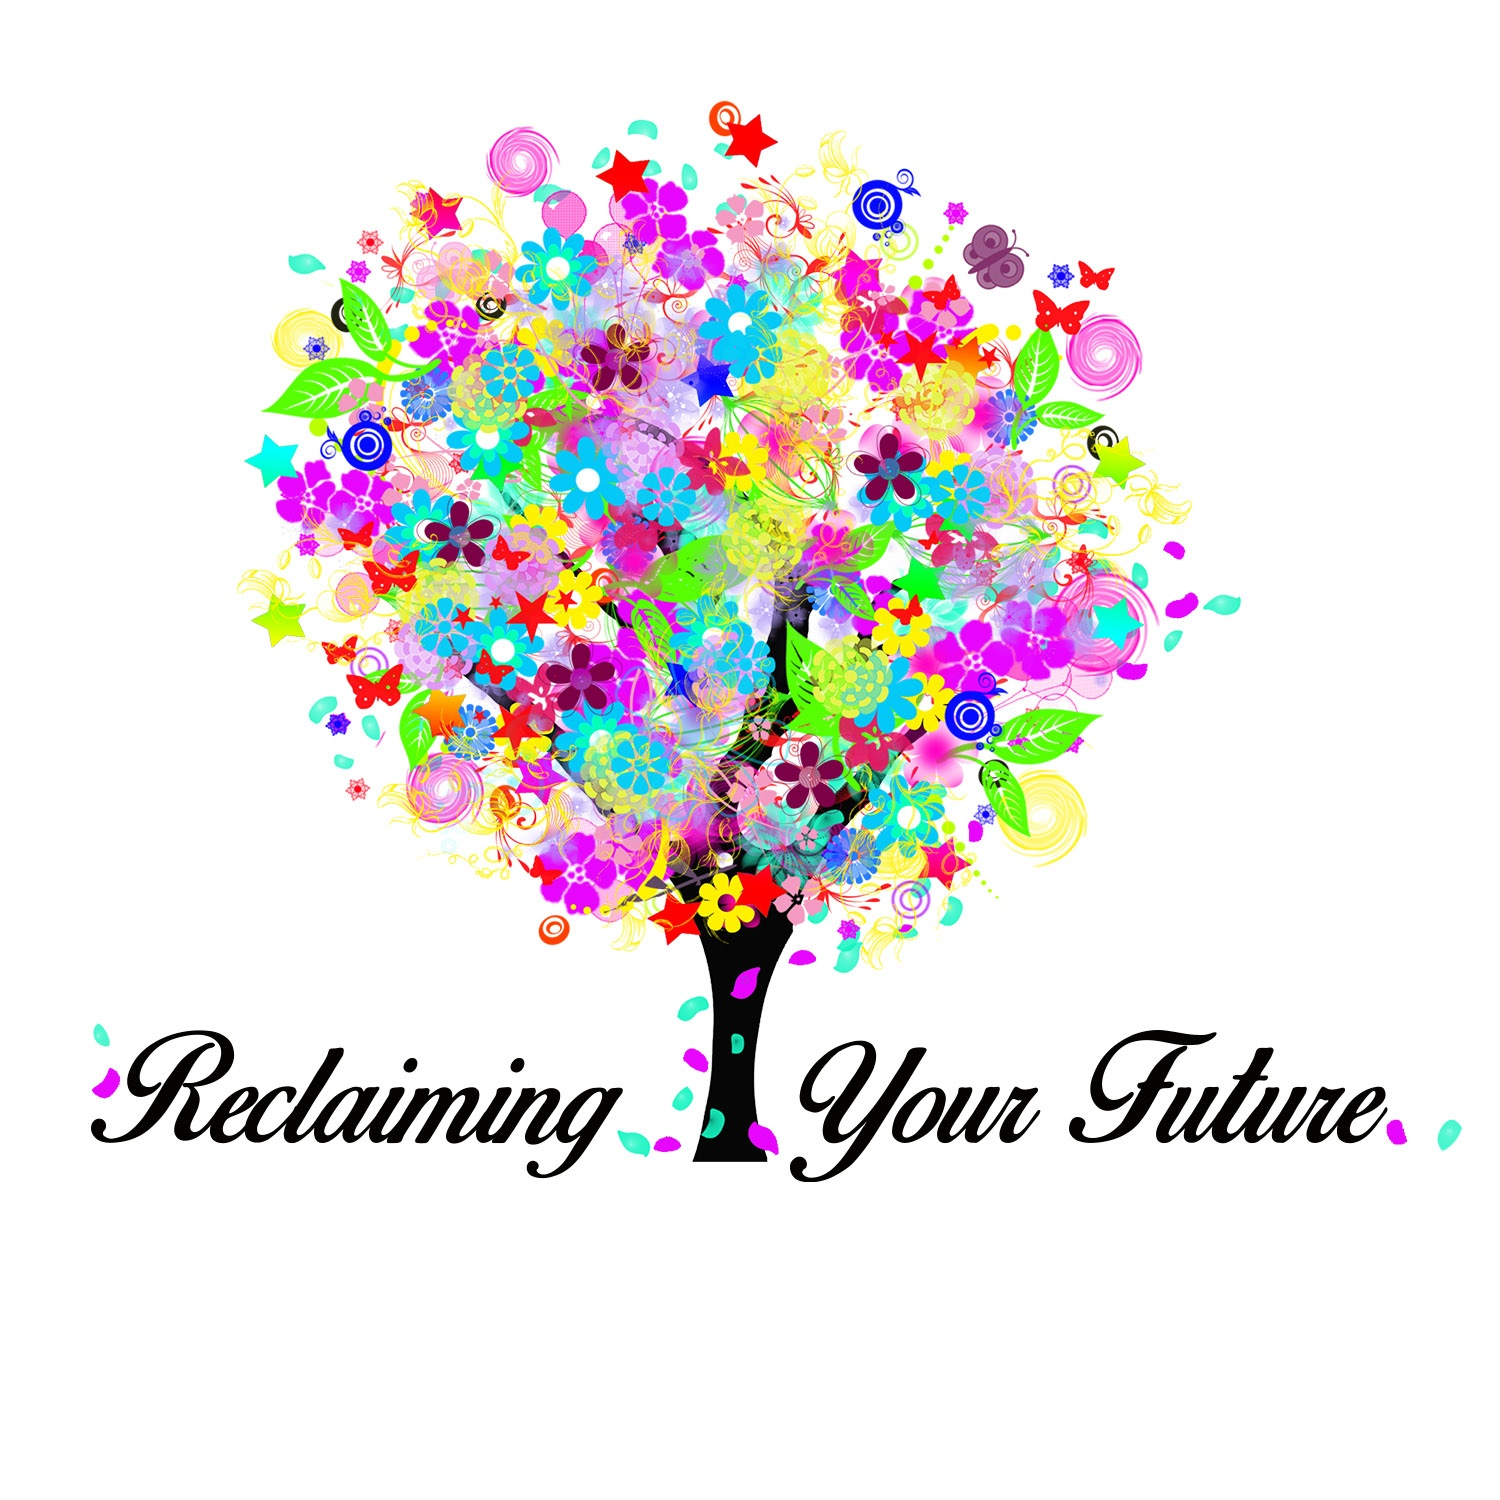 Reclaiming Your Future